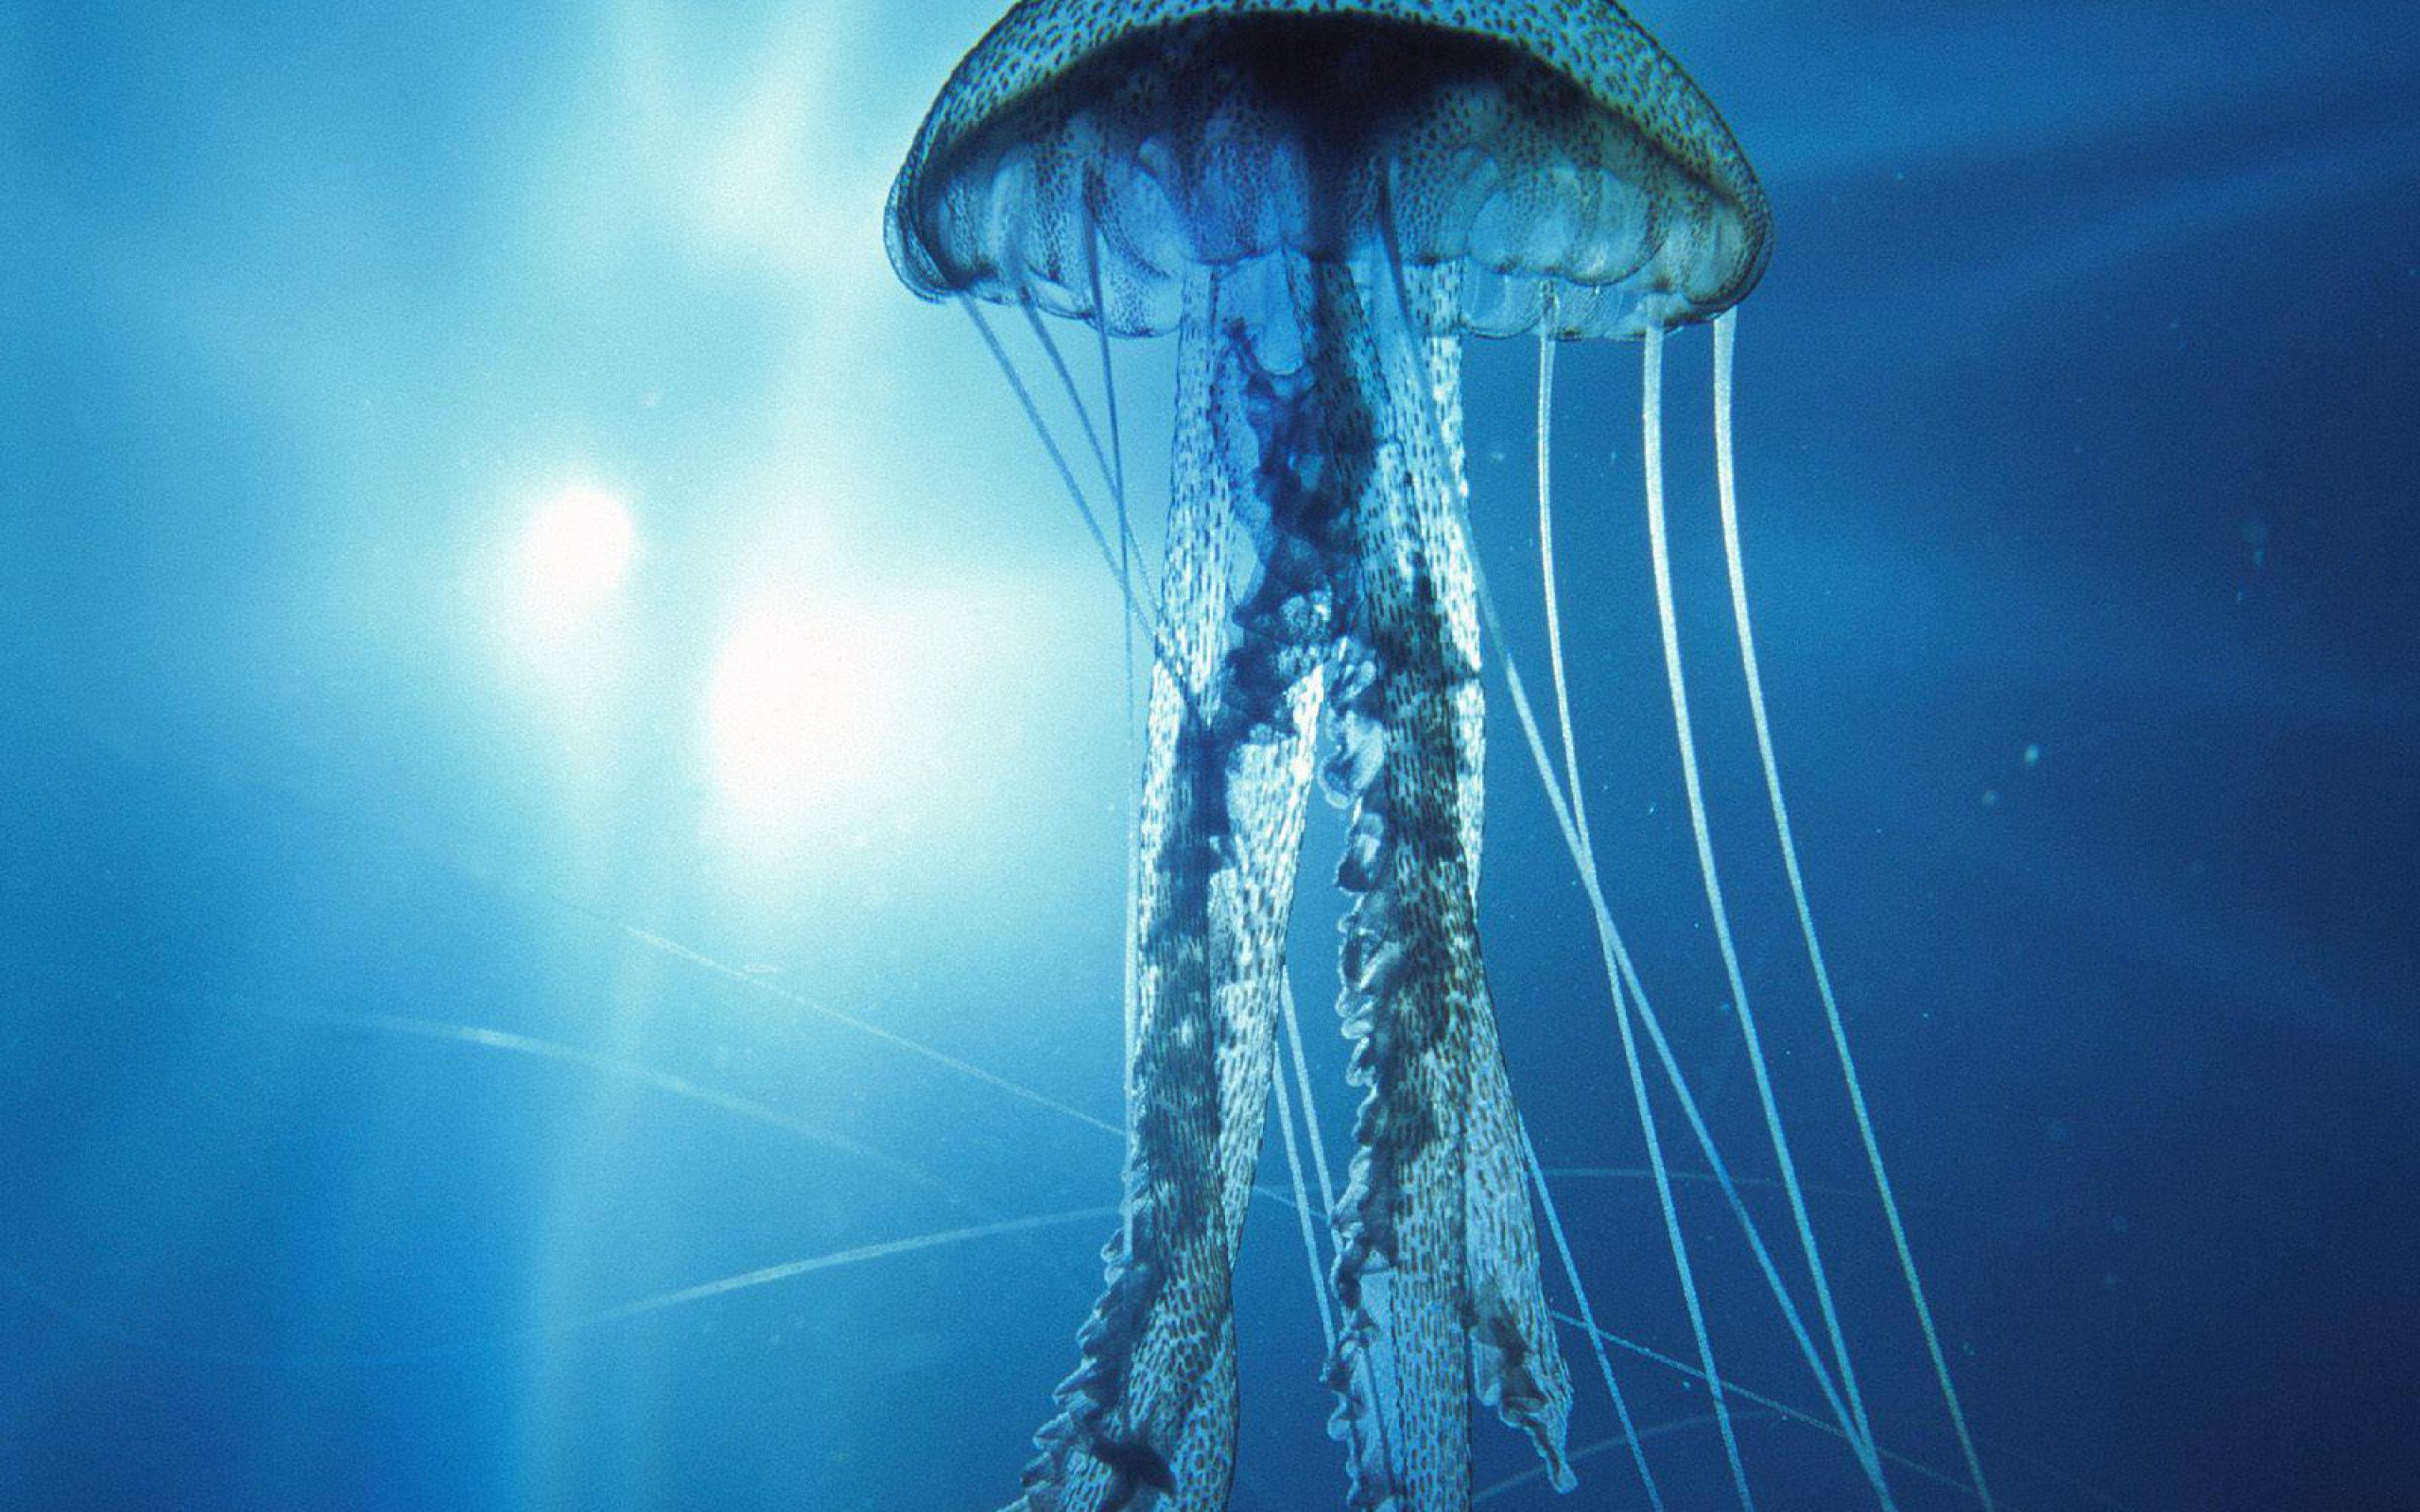 Jellyfish wallpapers hd pixelstalk net - Jellyfish hd images ...